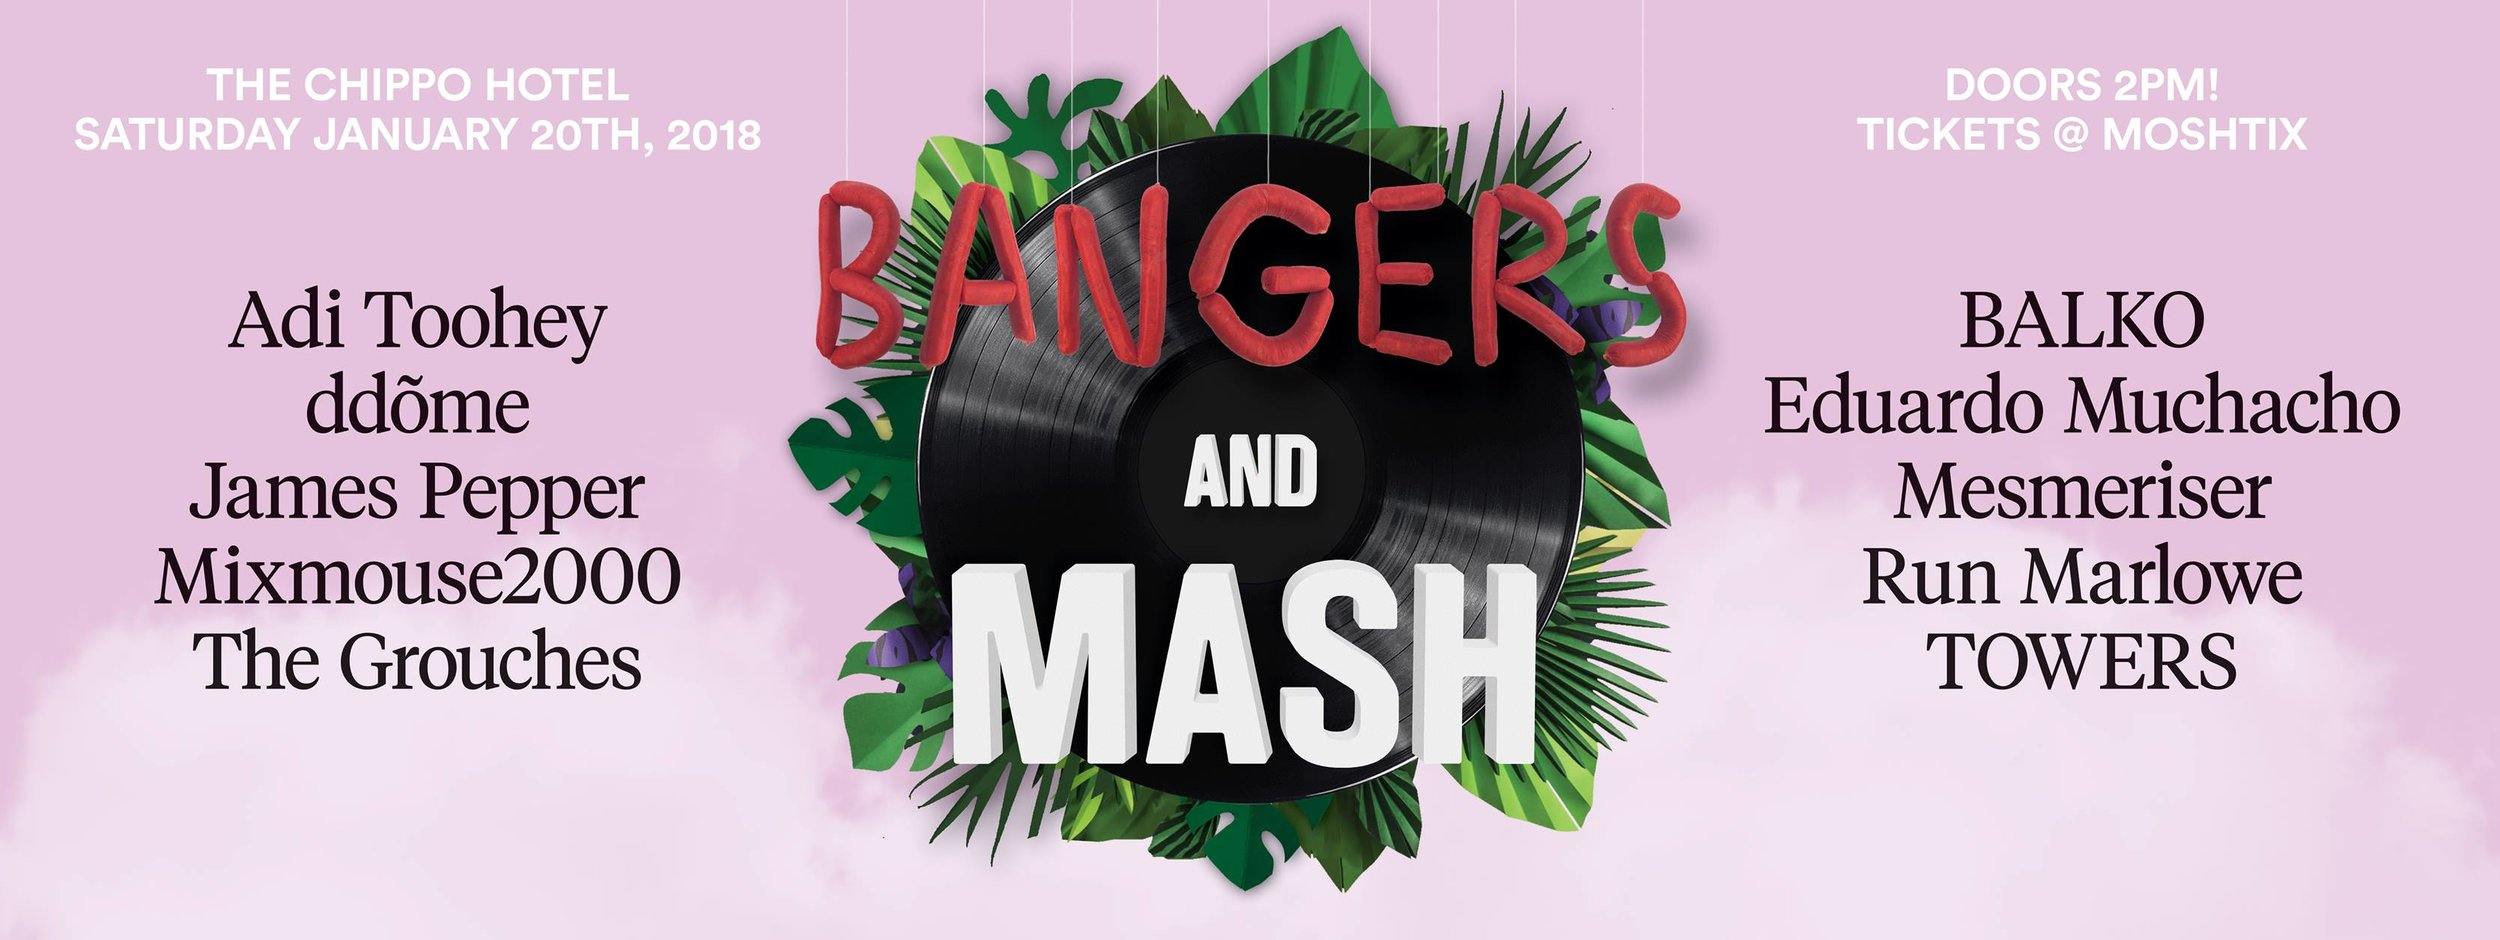 Unleash your inner groove at BANGERS & MASH 2018, its second year in the heart of the Sydney suburbs. The Chippo Hotel is letting us call home again with their chill summer vibes for another full venue takeover. A day full of live art, great grub, beats, beers and solid banter into the night.  LINE UP: Adi Toohey BALKO ddõme Eduardo Muchacho James Pepper Mesmeriser Mixmouse2000 Run Marlowe  The Grouches TOWERS  LIVE ART BY: Hope Vanny Josh Pabs Cusack Mon Lou Bed  ---- TICKETS ON SALE DEC 5 First Release: $15 Second Release: $20 Doors: $25  Online ticket sales will close January 19th or until allocation exhausted. Limited tickets will be available on the door on the day.  ............................................................... PROUDLY SPONSORED BY  Sailor Jerry